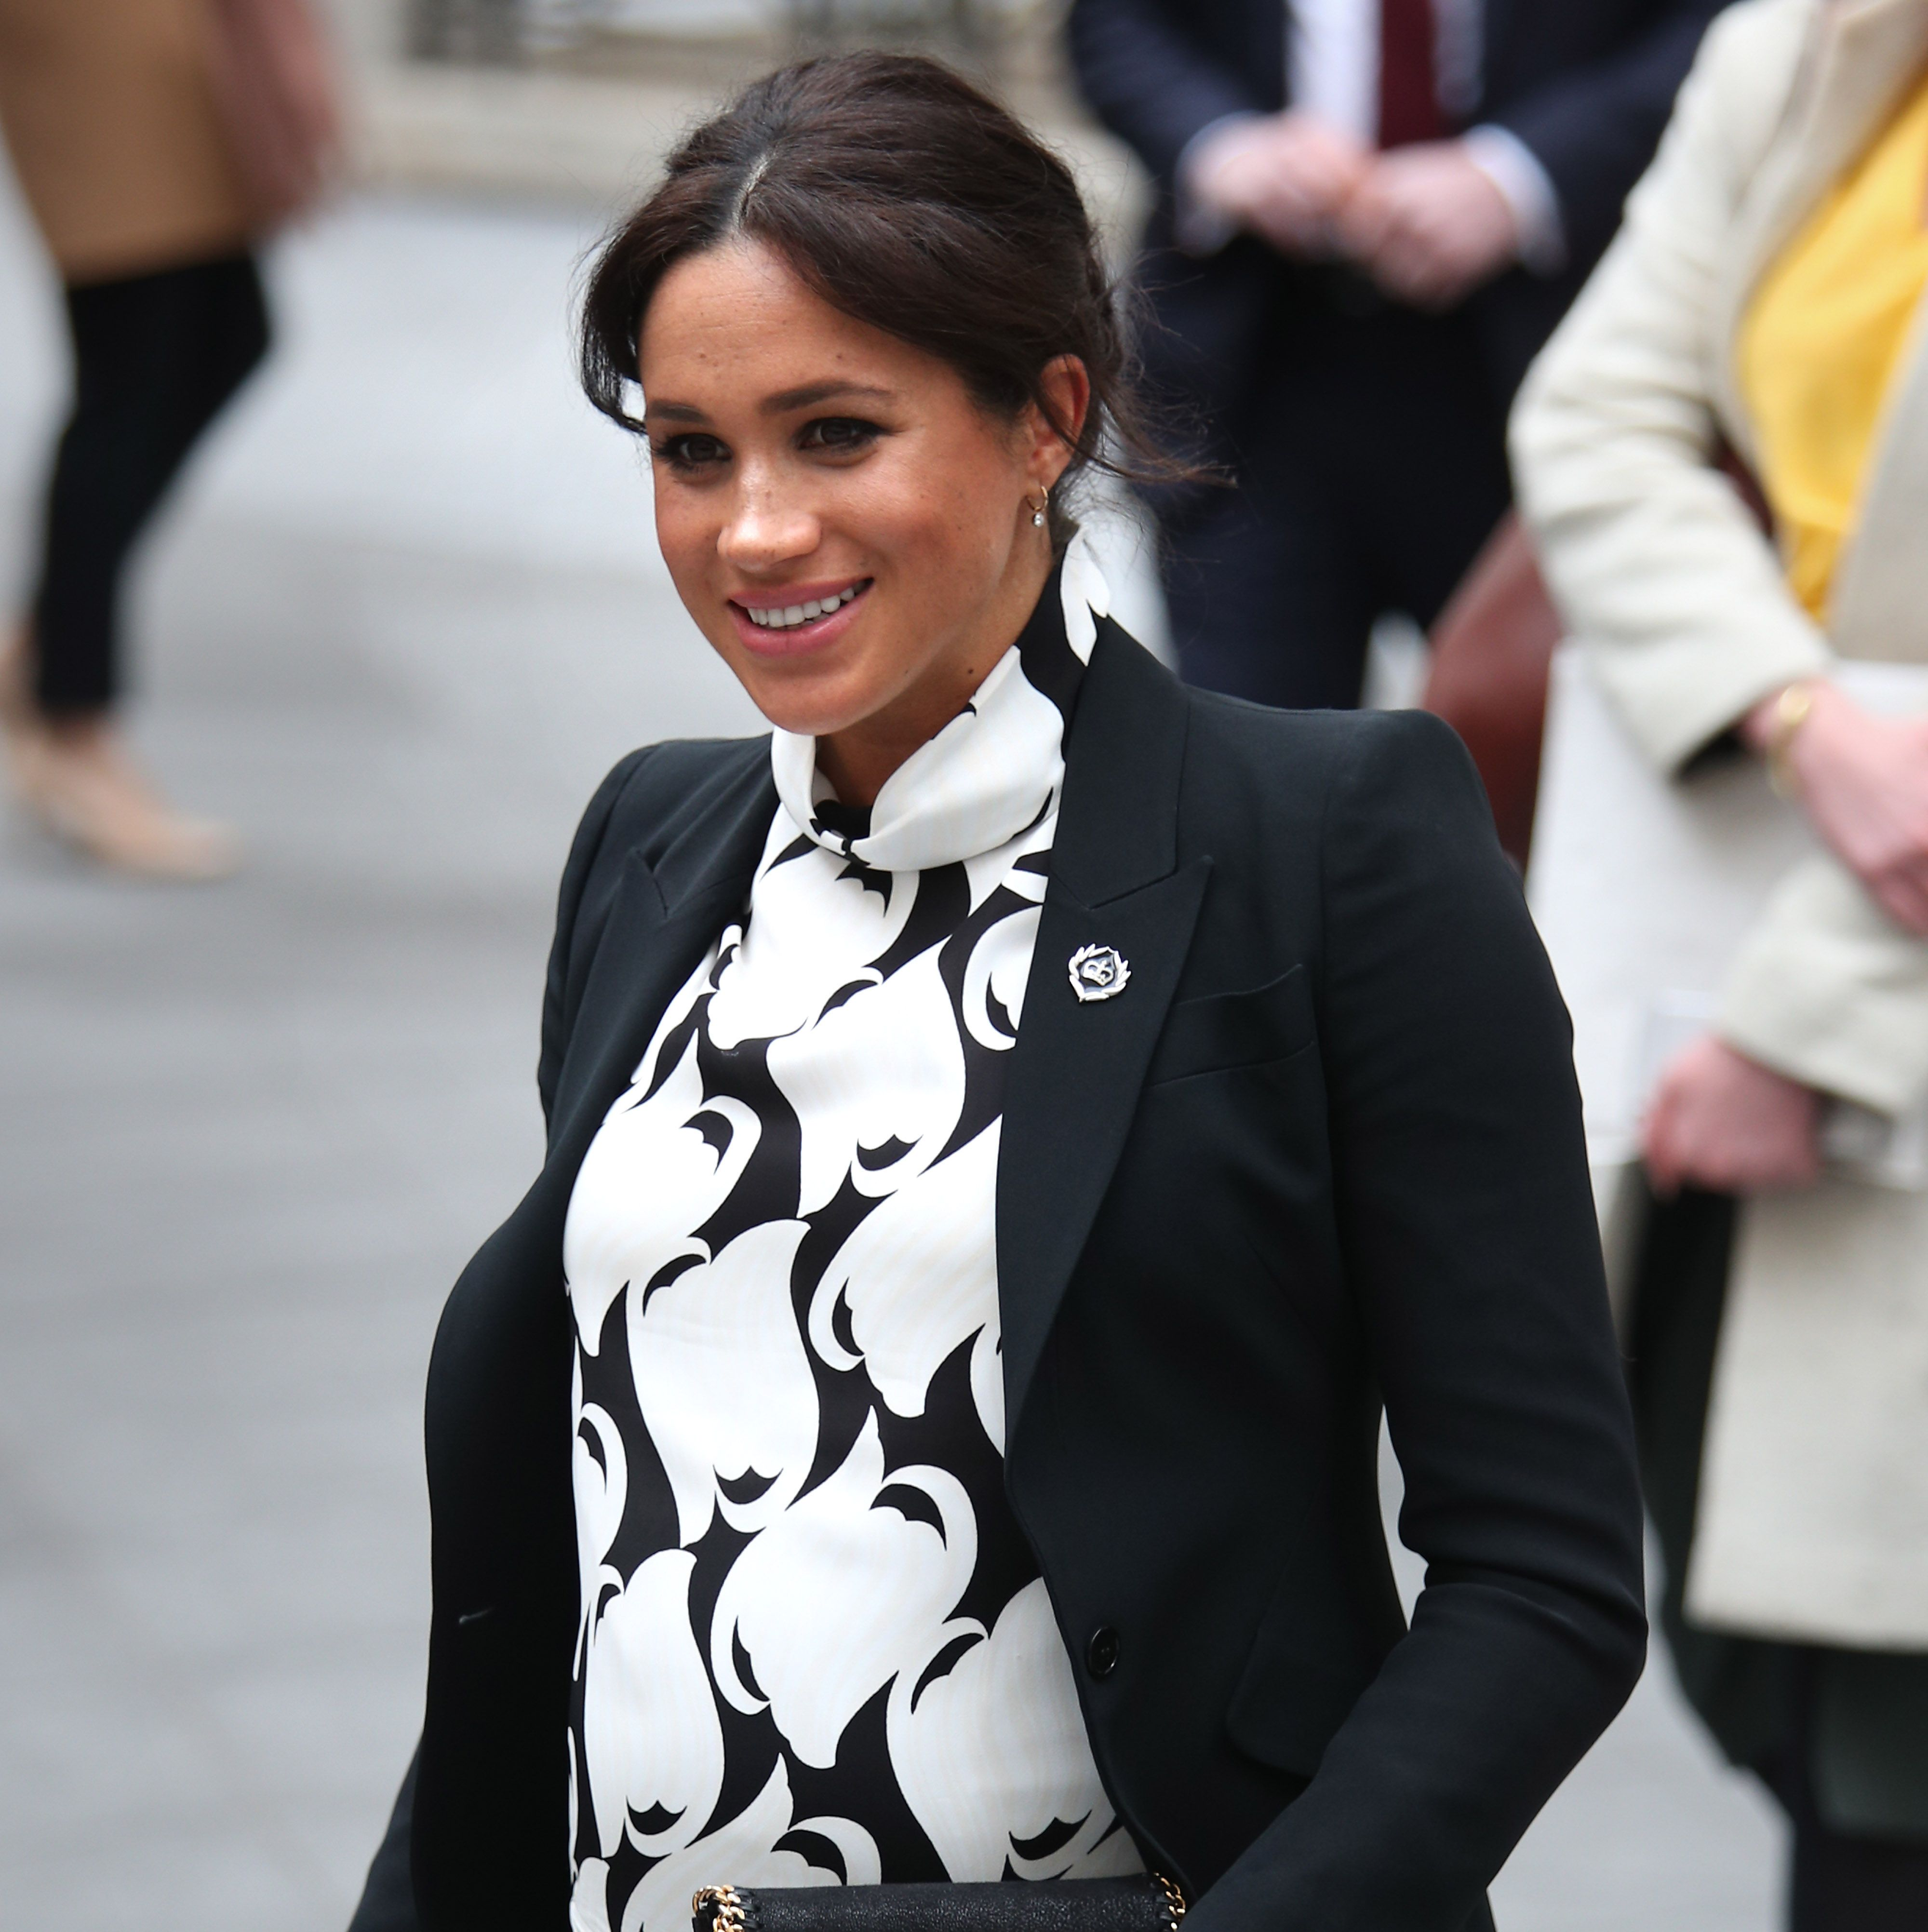 The Internet Really Can't Figure Out What Print Meghan Markle Wore Today